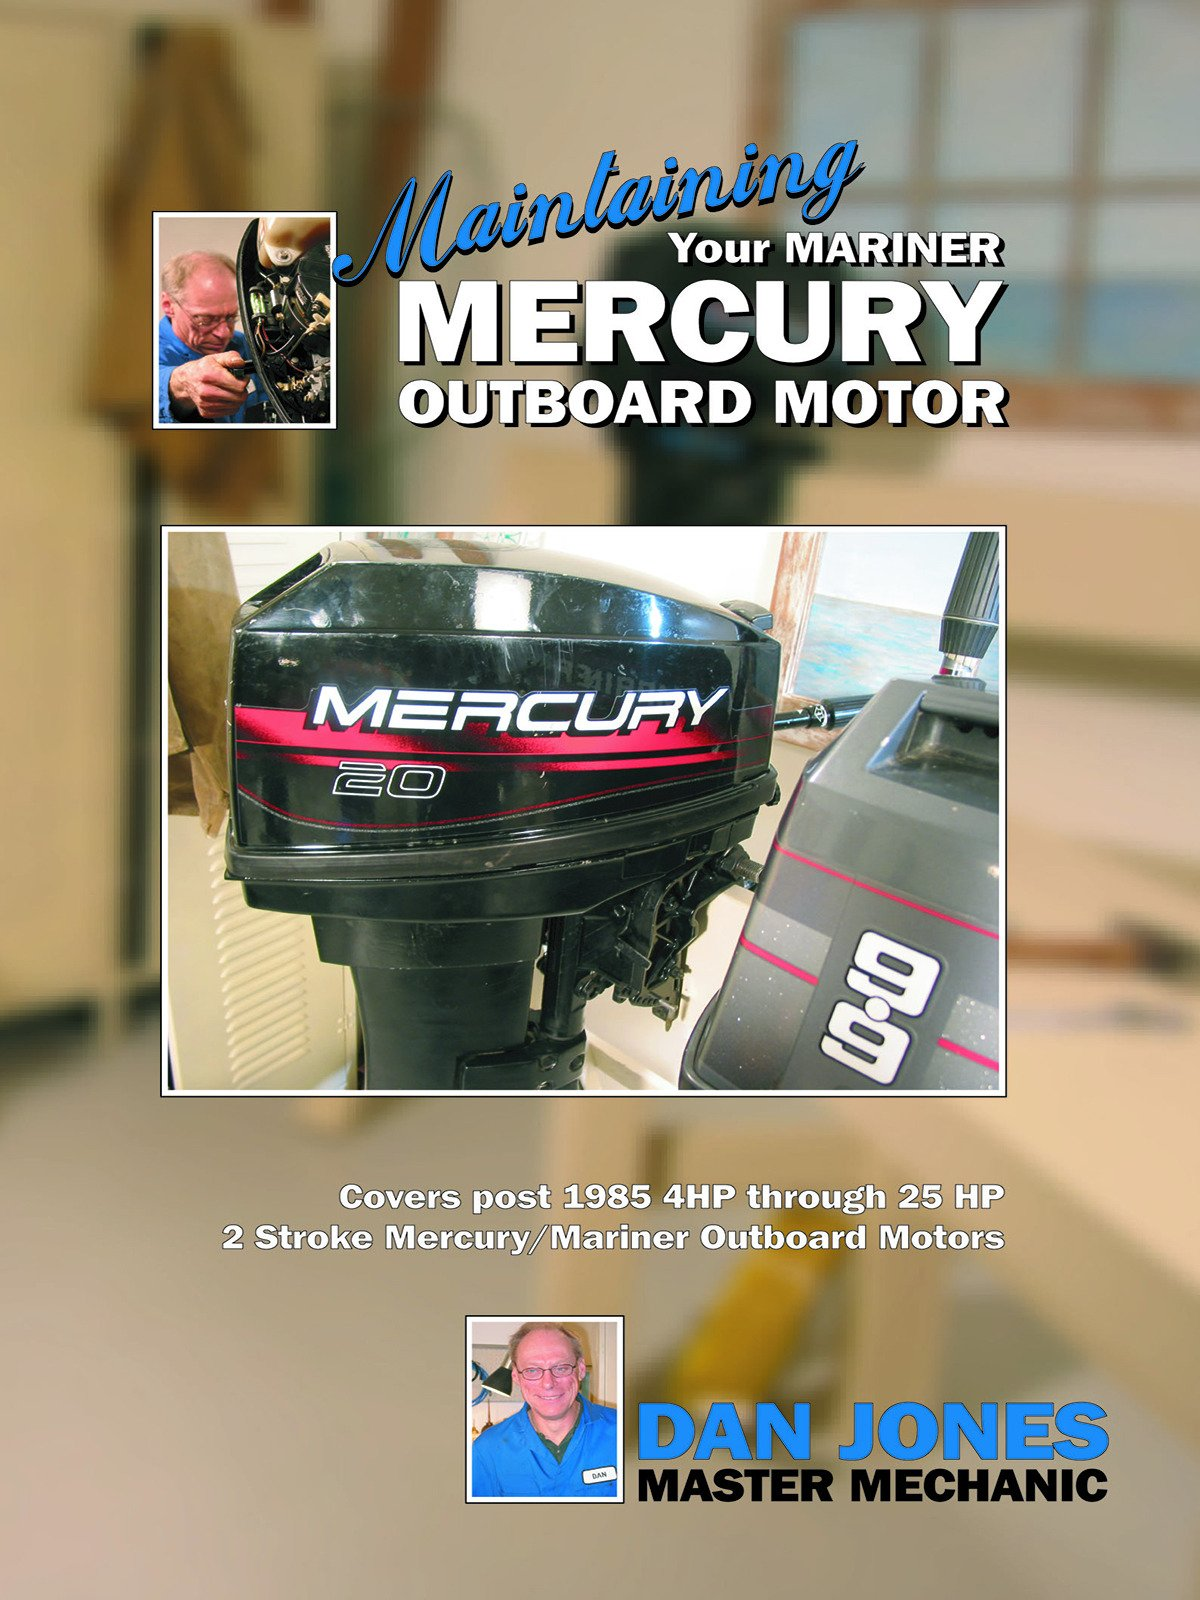 Maintaining Your Mariner Mercury Outboard Motor